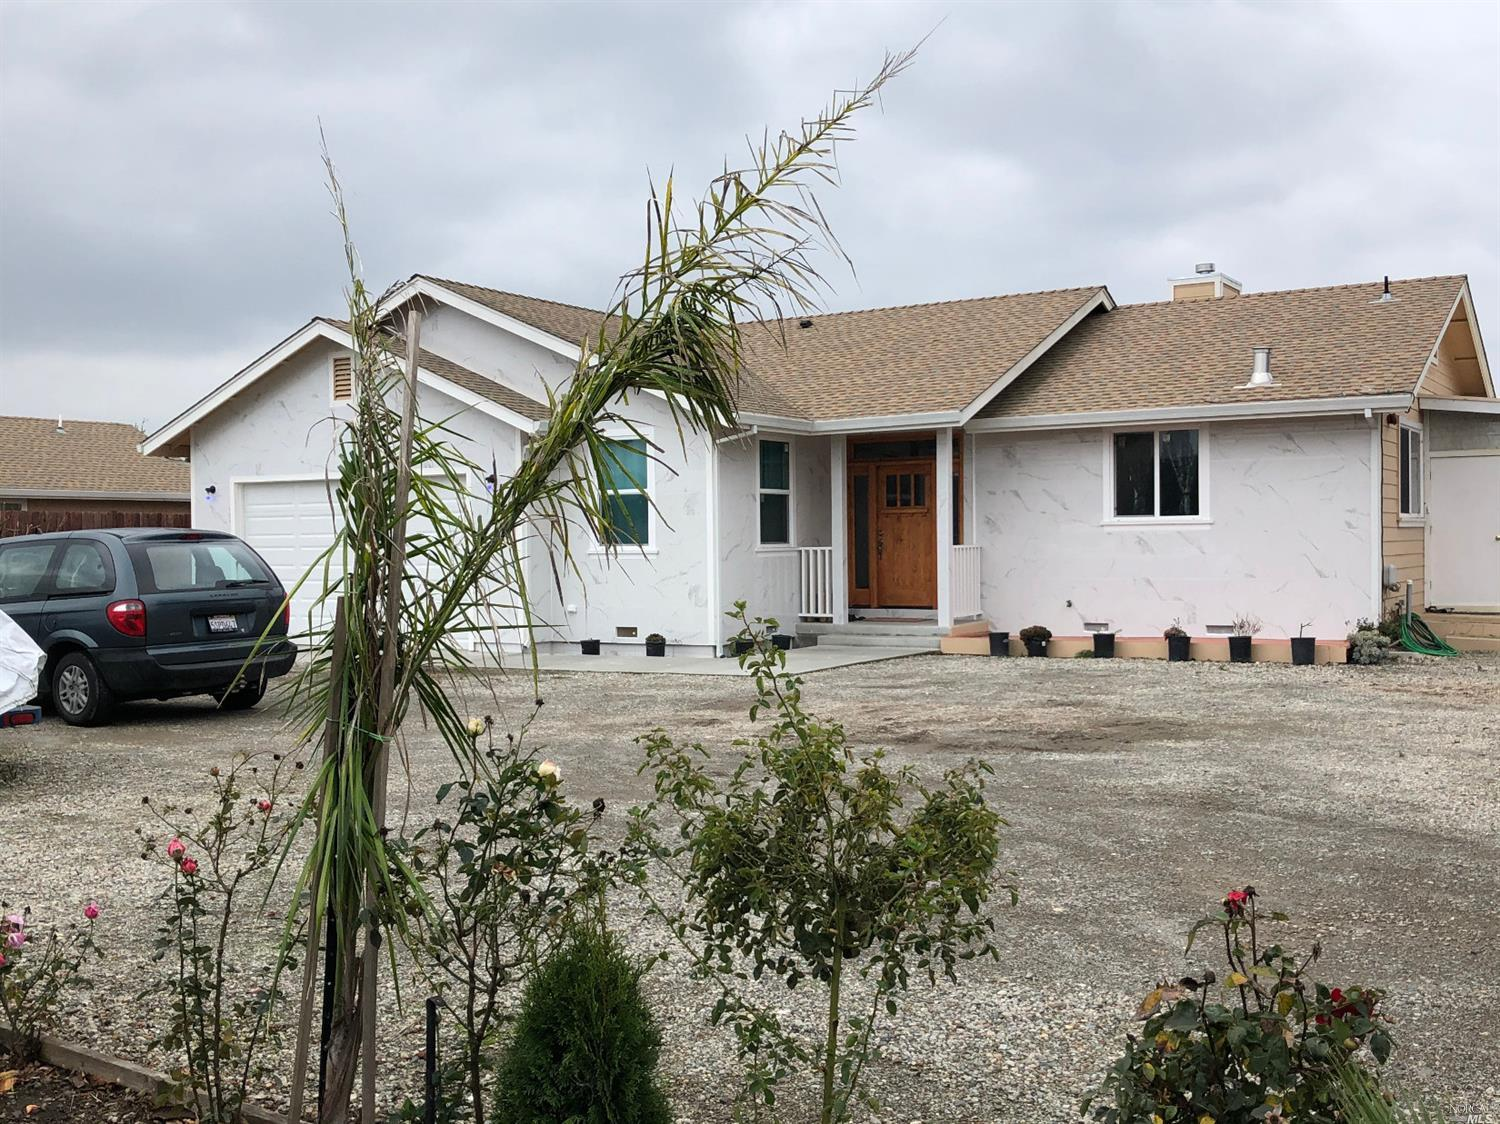 4 Bedroom 2 Bath home near SSU.  Available 1-1-20  This home features: A Combination family room and